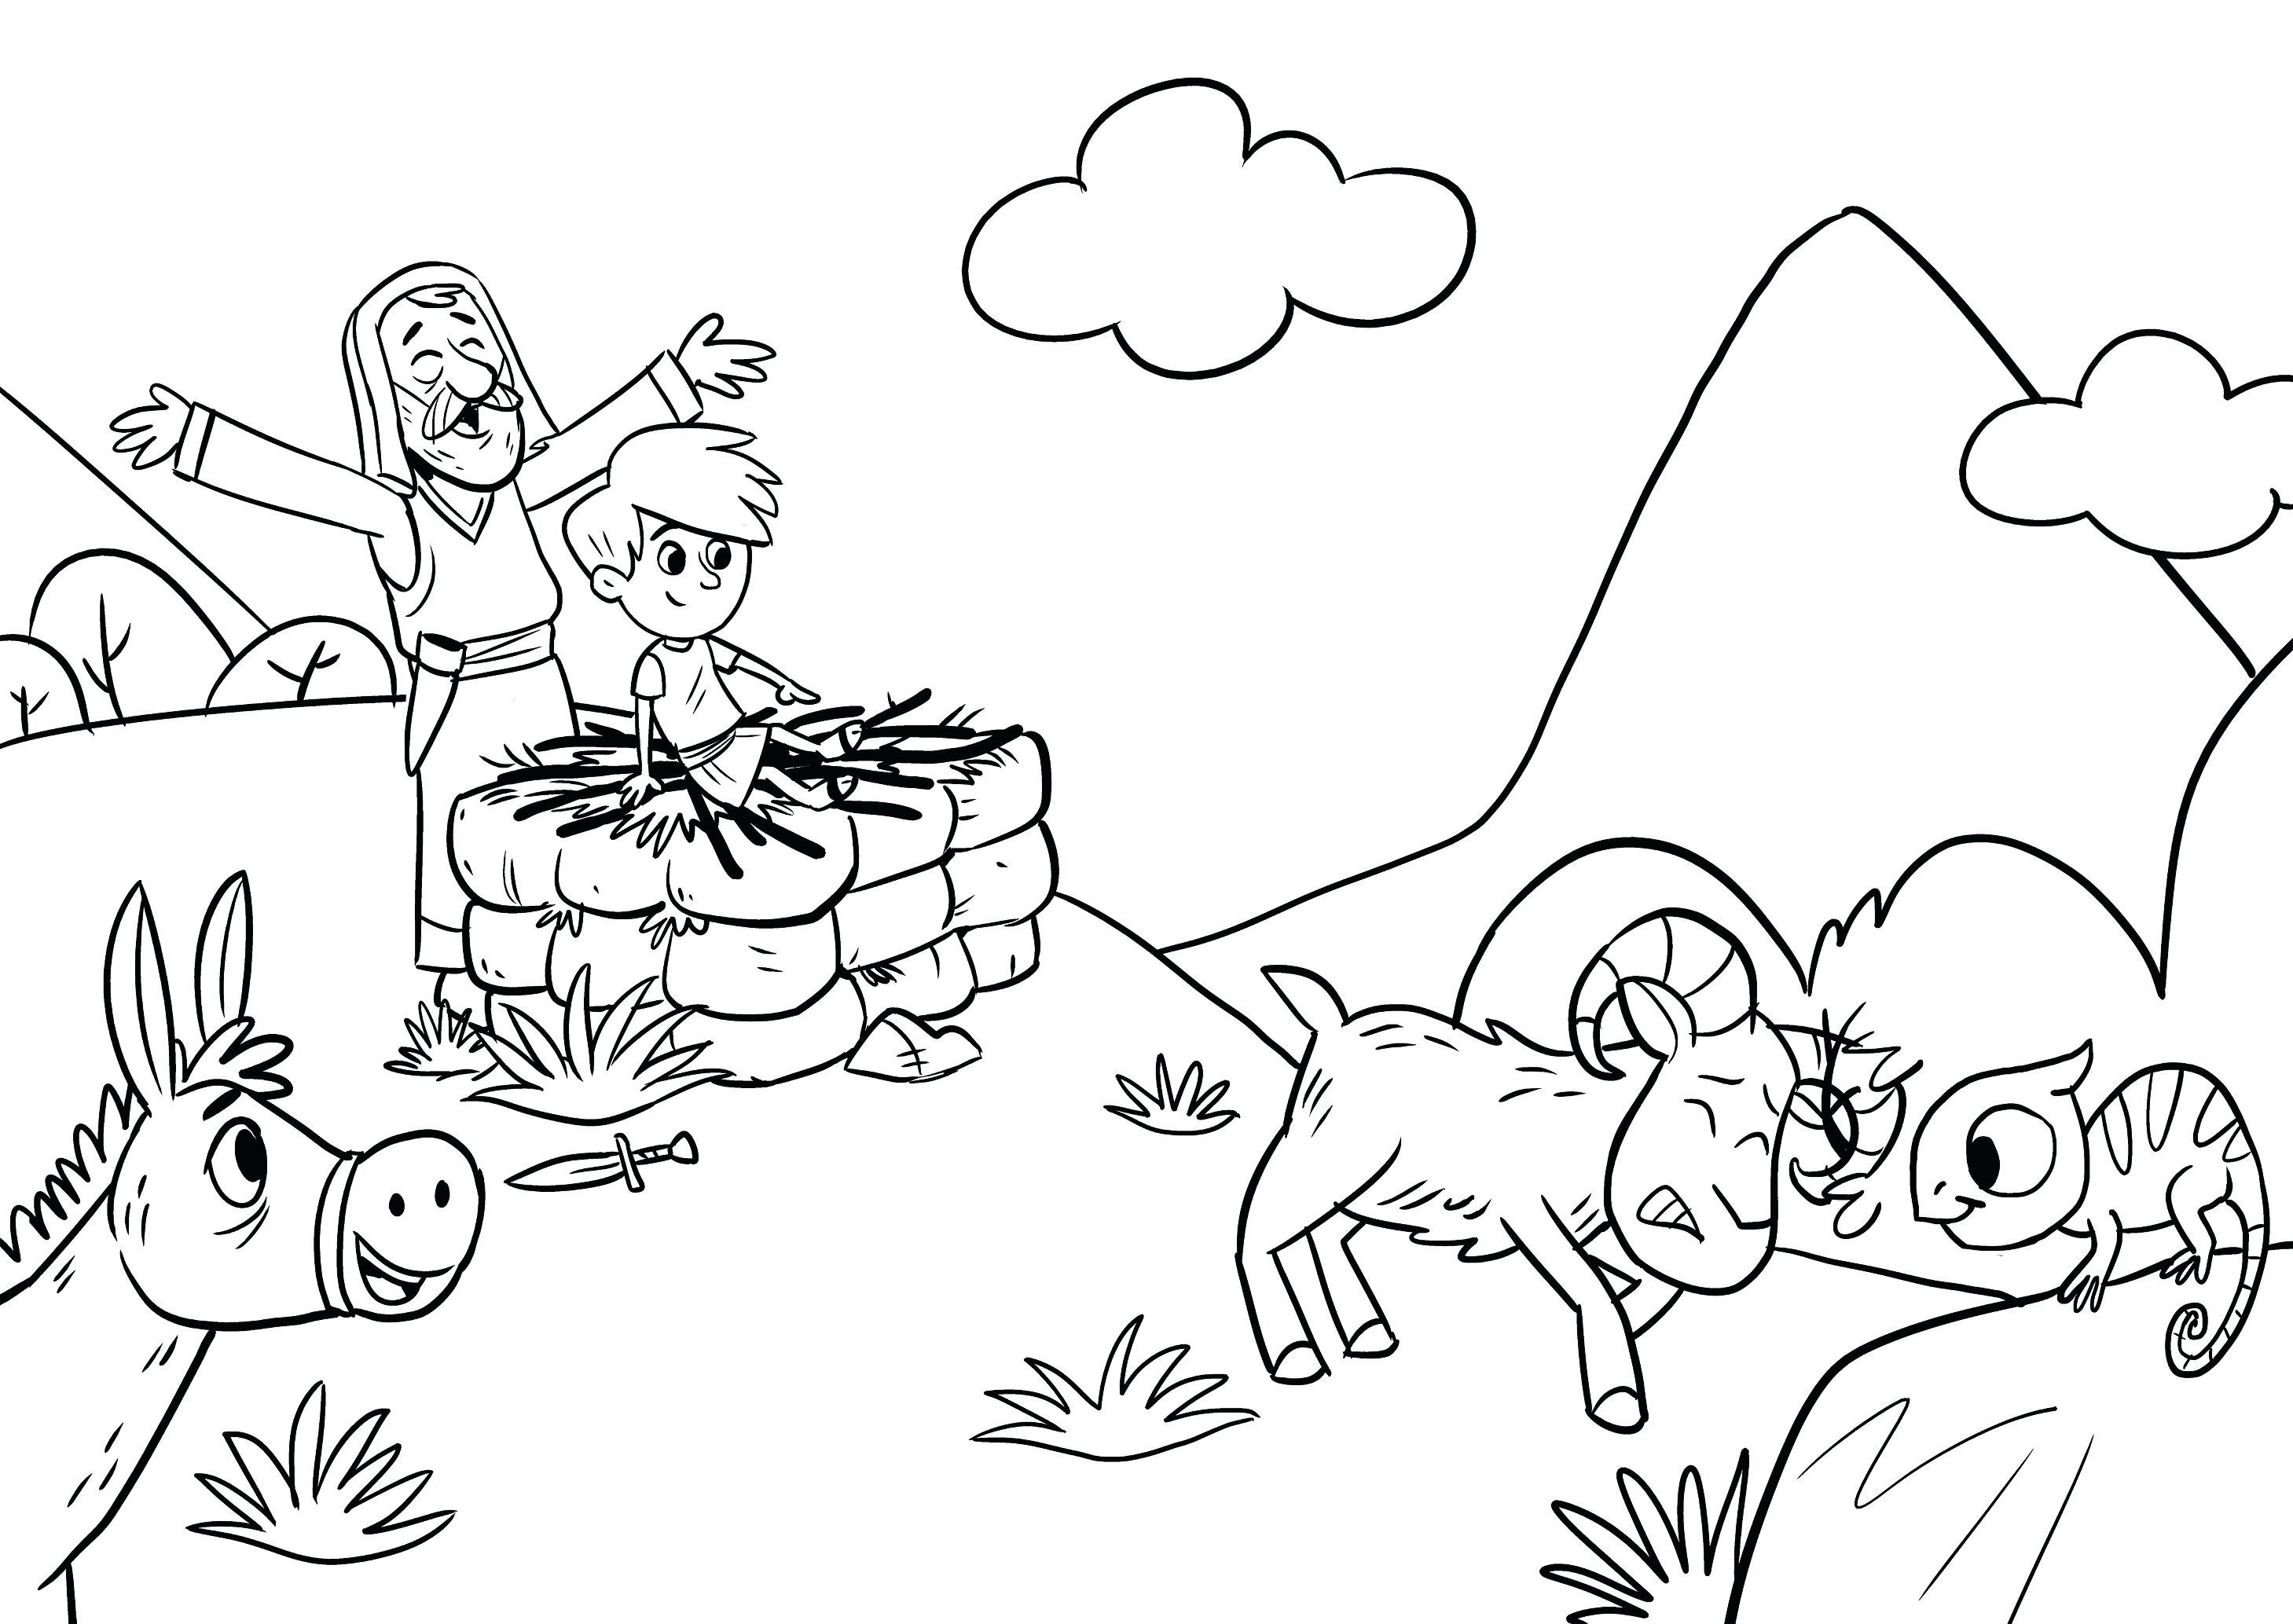 Abraham and Sarah Coloring Pages  Collection 8g - Free For kids